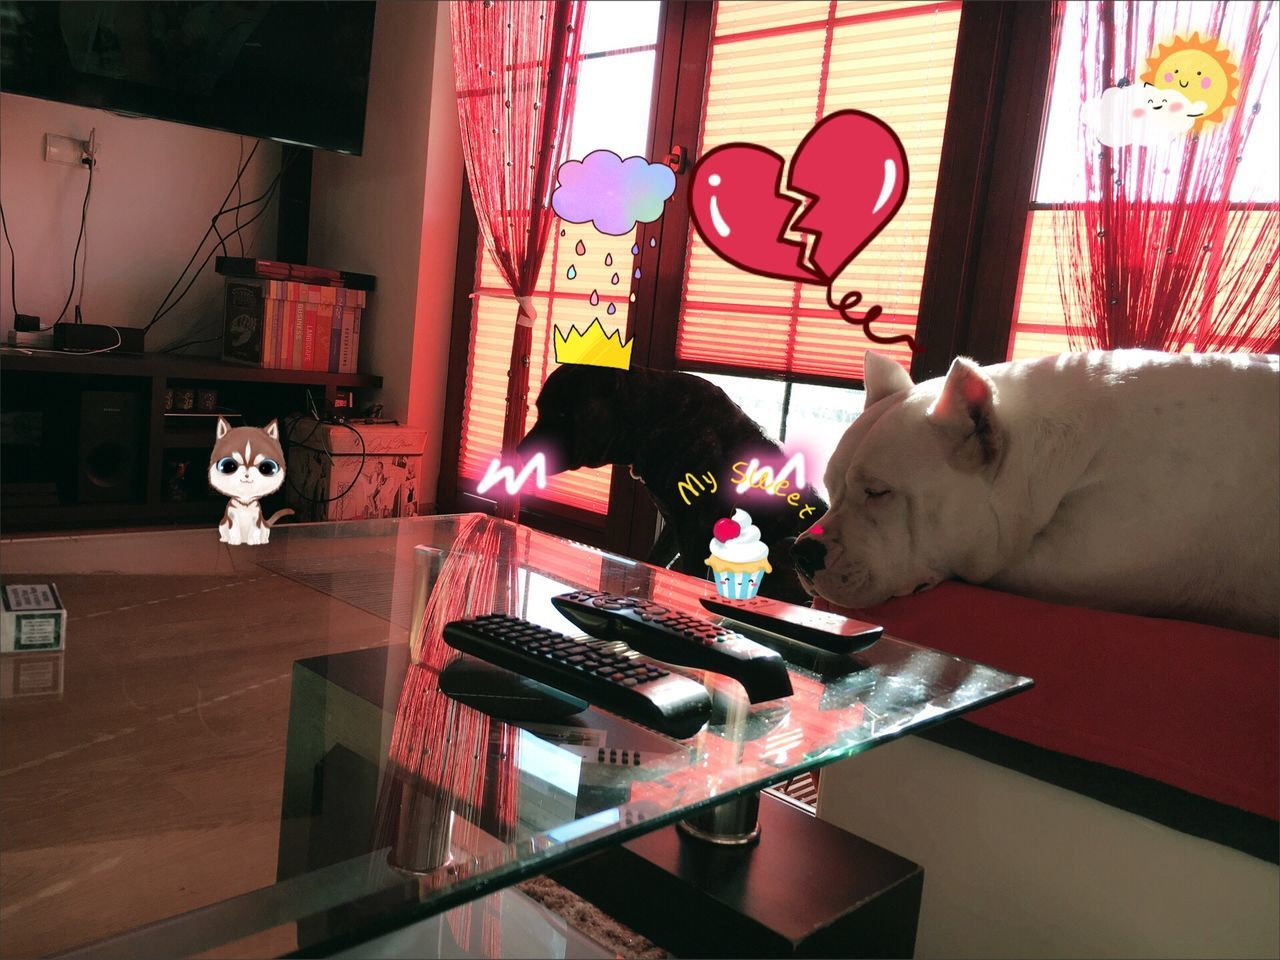 real people, indoors, home interior, one person, mammal, pets, animal themes, one animal, domestic animals, lifestyles, domestic cat, day, young adult, keyboard